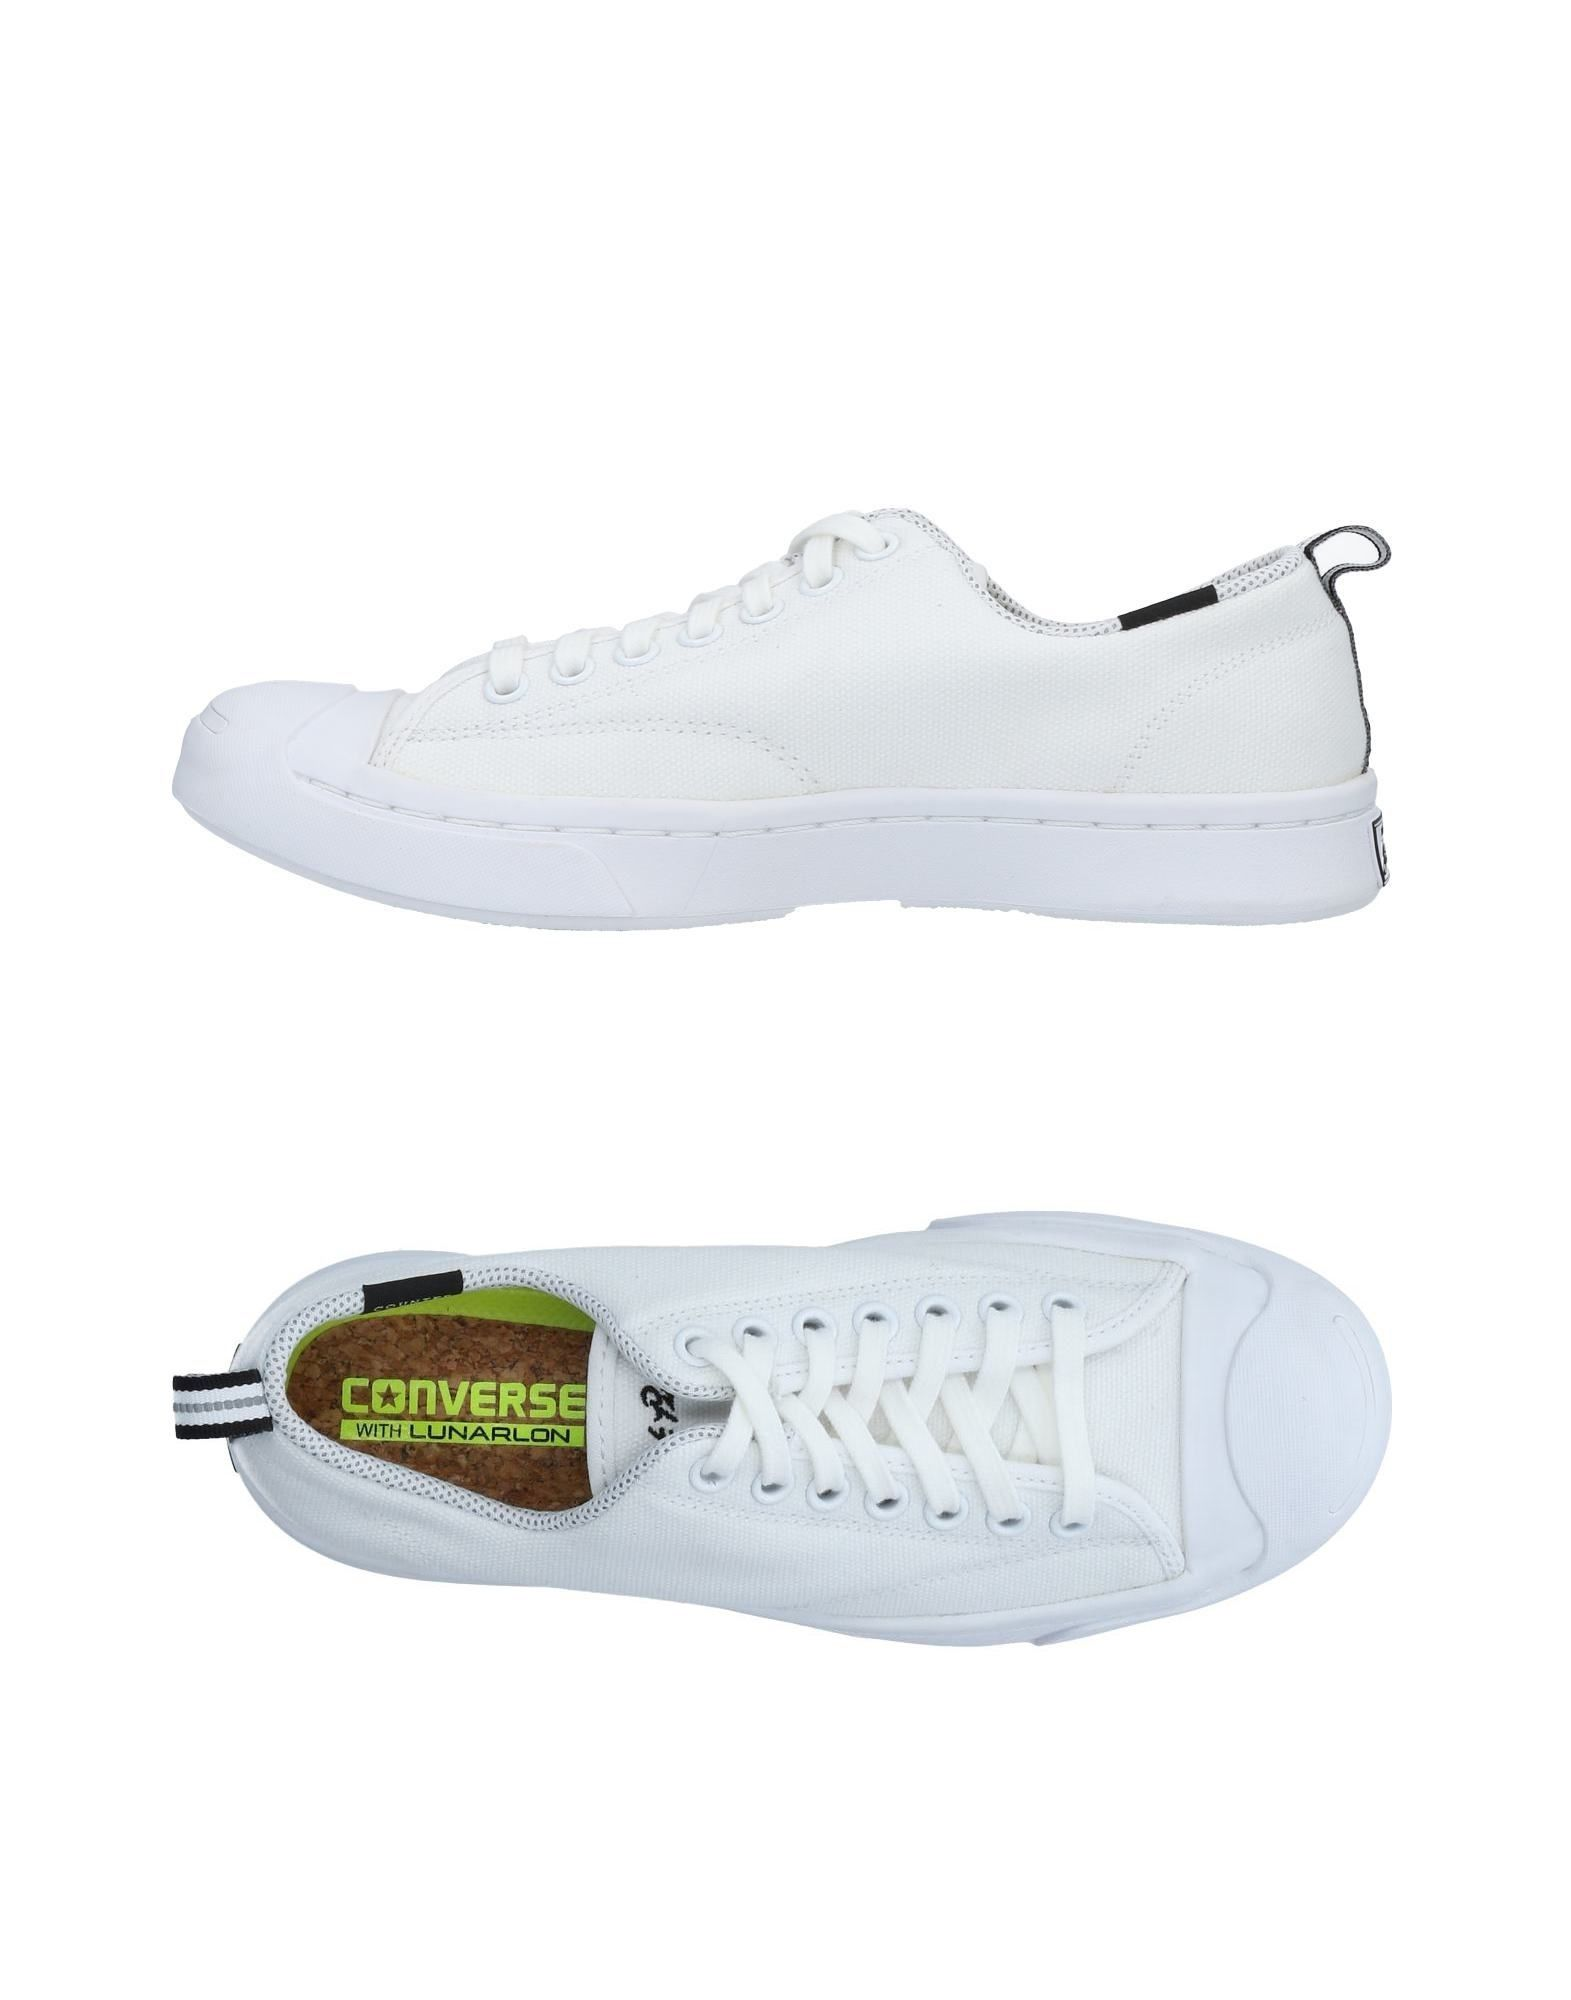 Baskets Converse Jack Purcell Femme Purcell - Baskets Converse Jack Purcell Femme Blanc Chaussures casual sauvages 4fb3a4